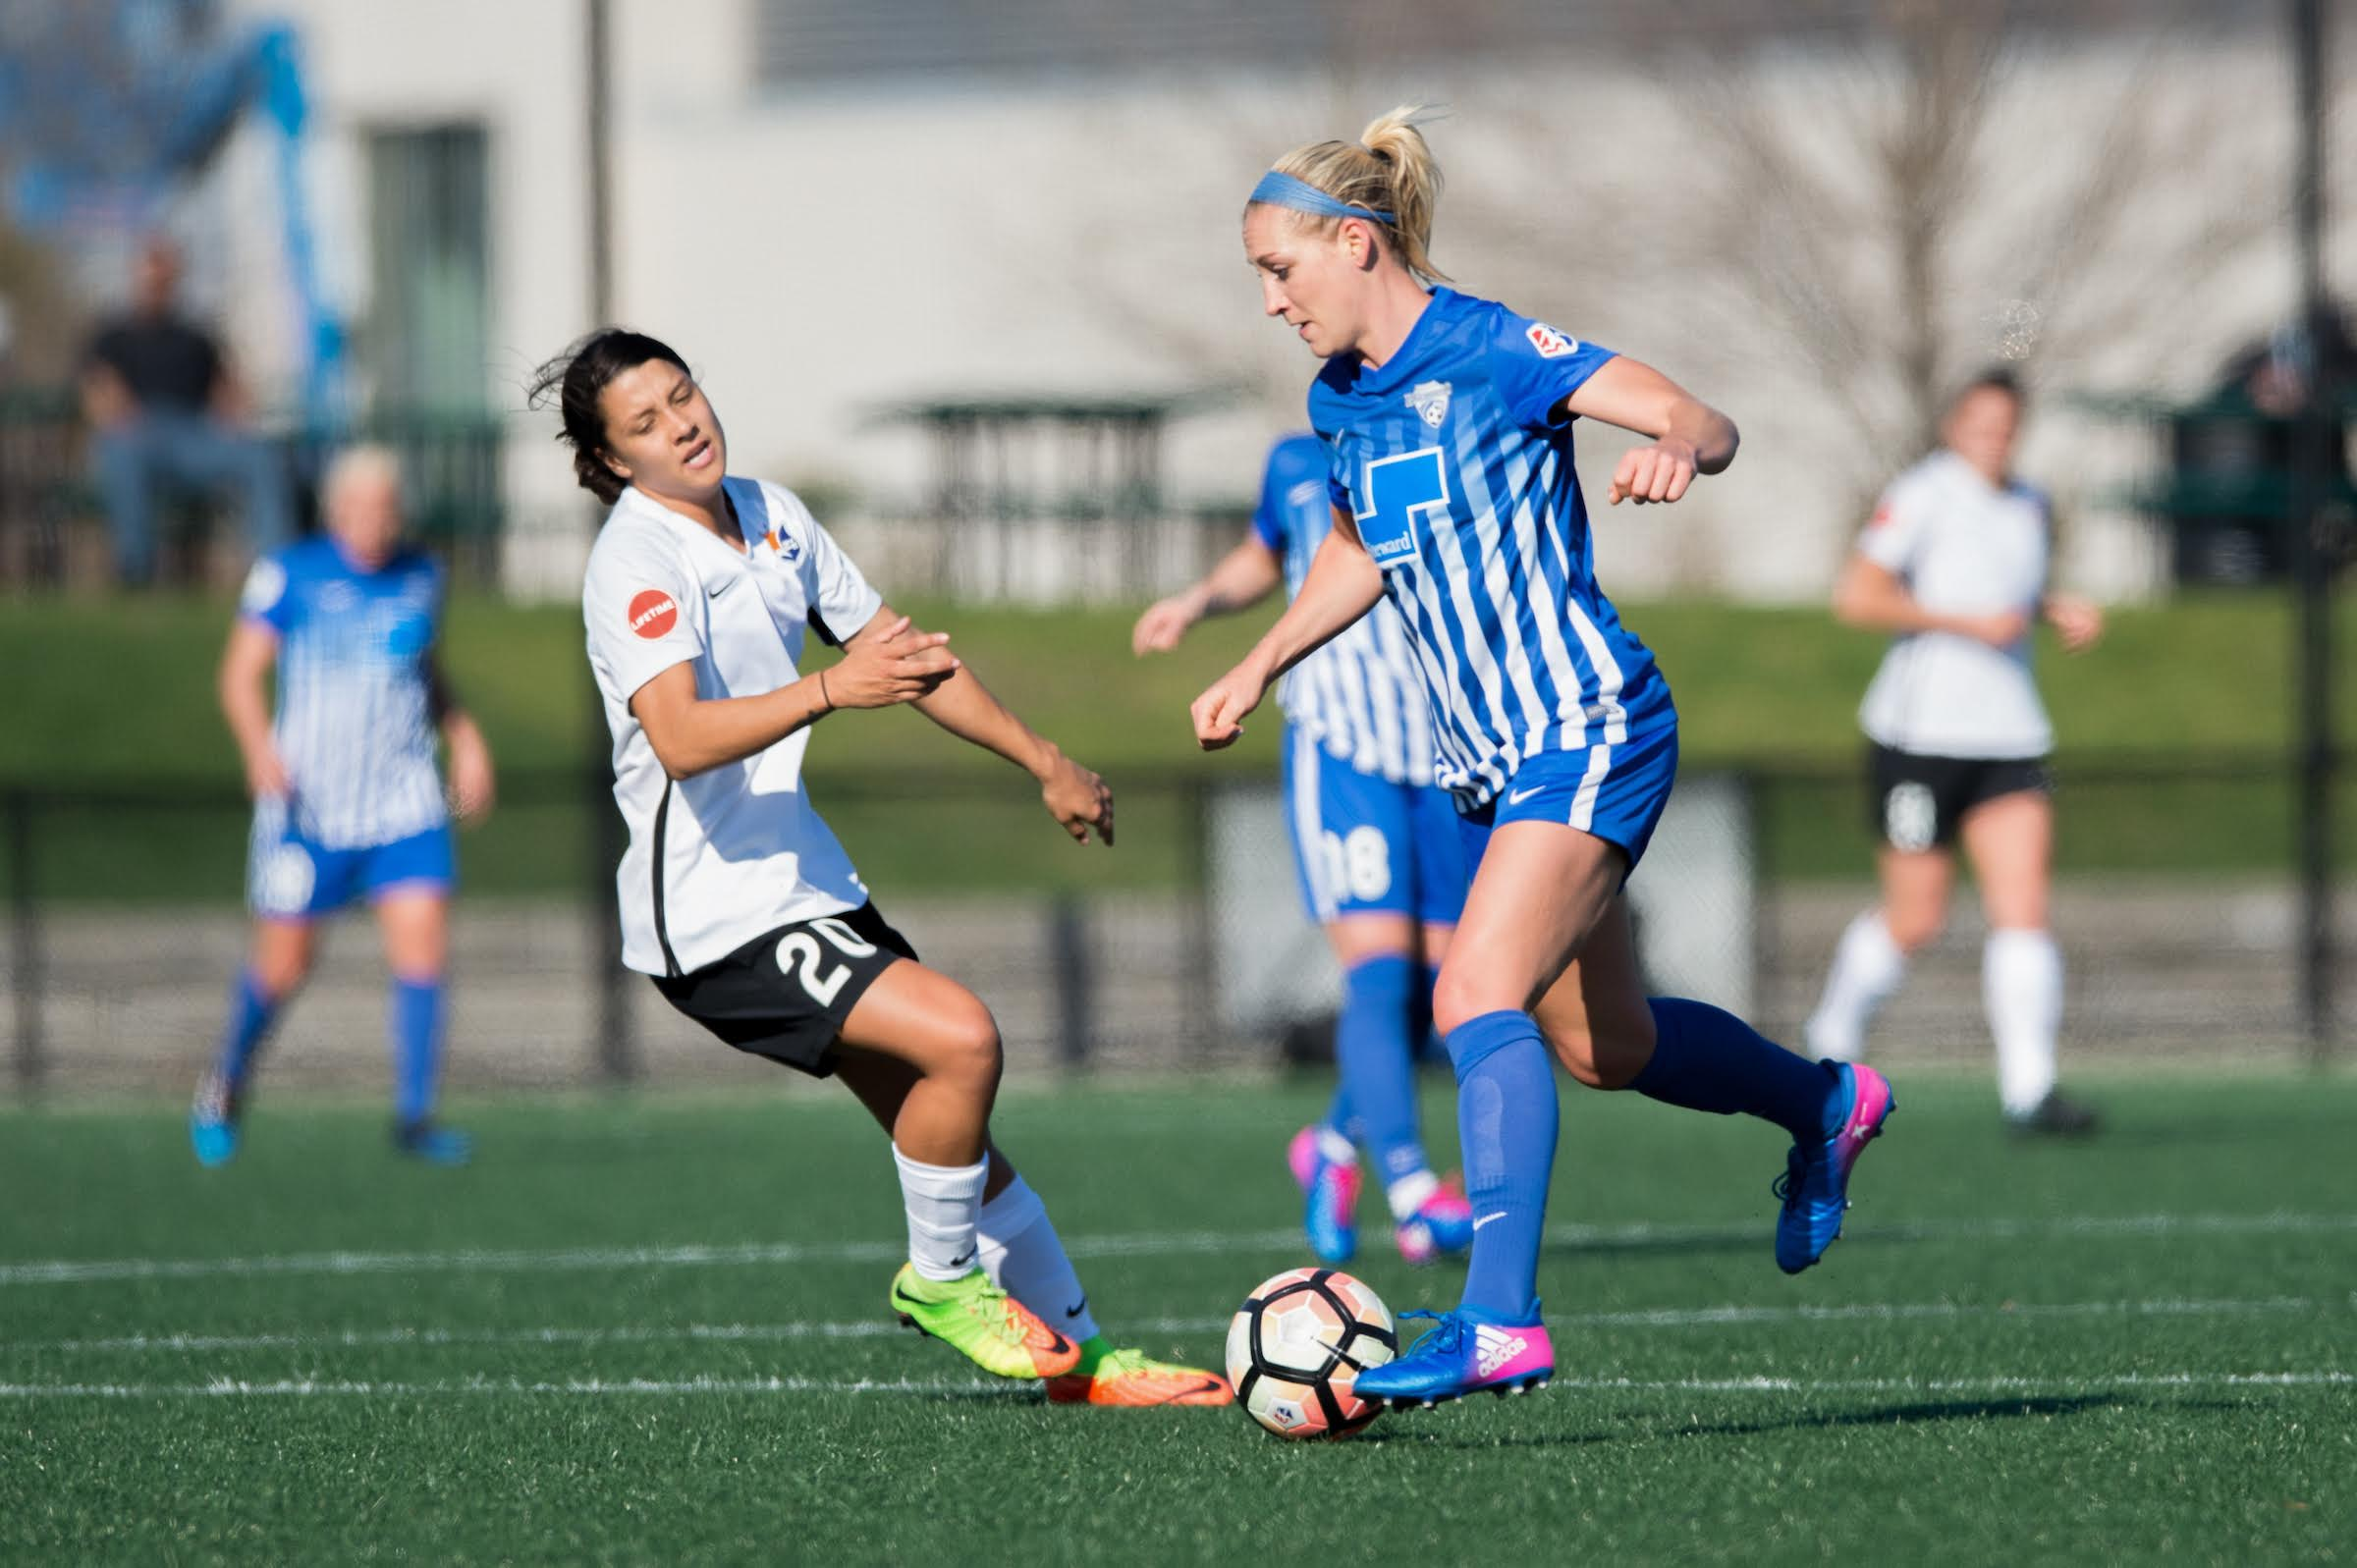 Megan Oyster has started and played in 13 games for the Breakers this season, logging 1,170 minutes on the backline. (Credit: ISI Photos/Mike Gridley)